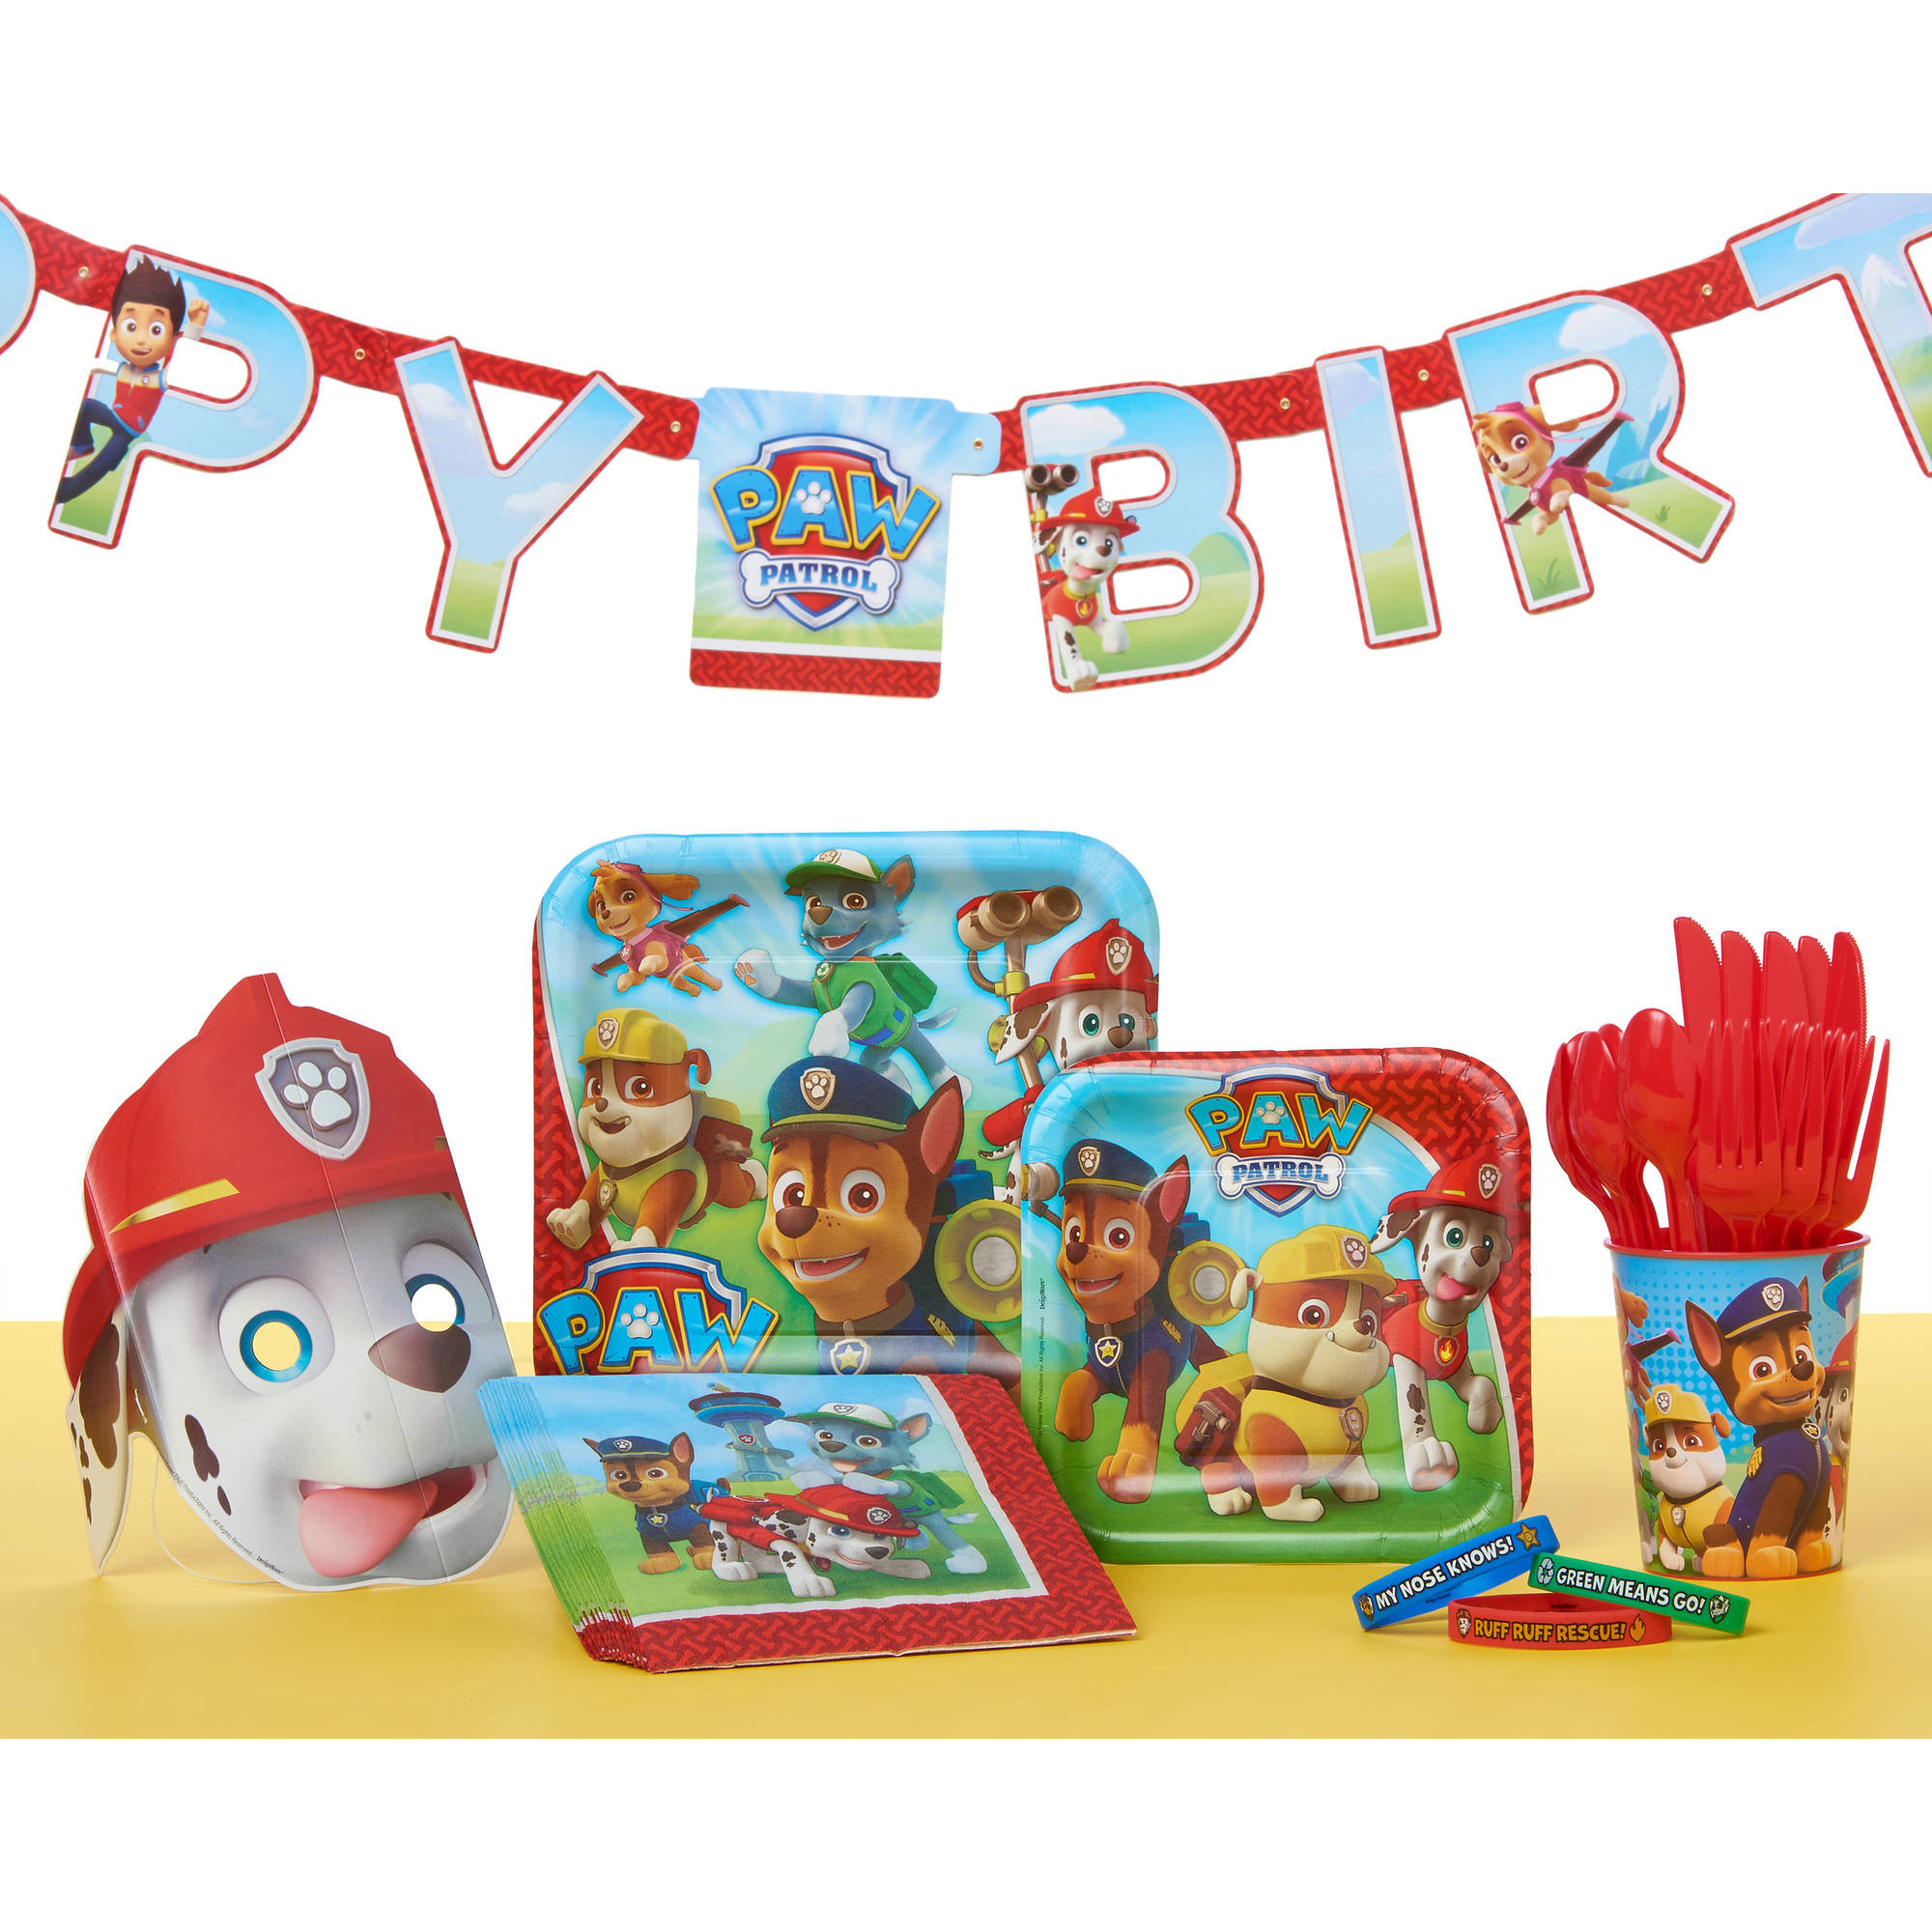 Best ideas about Paw Patrol Birthday Decor . Save or Pin PAW Patrol Party Supplies Walmart Now.